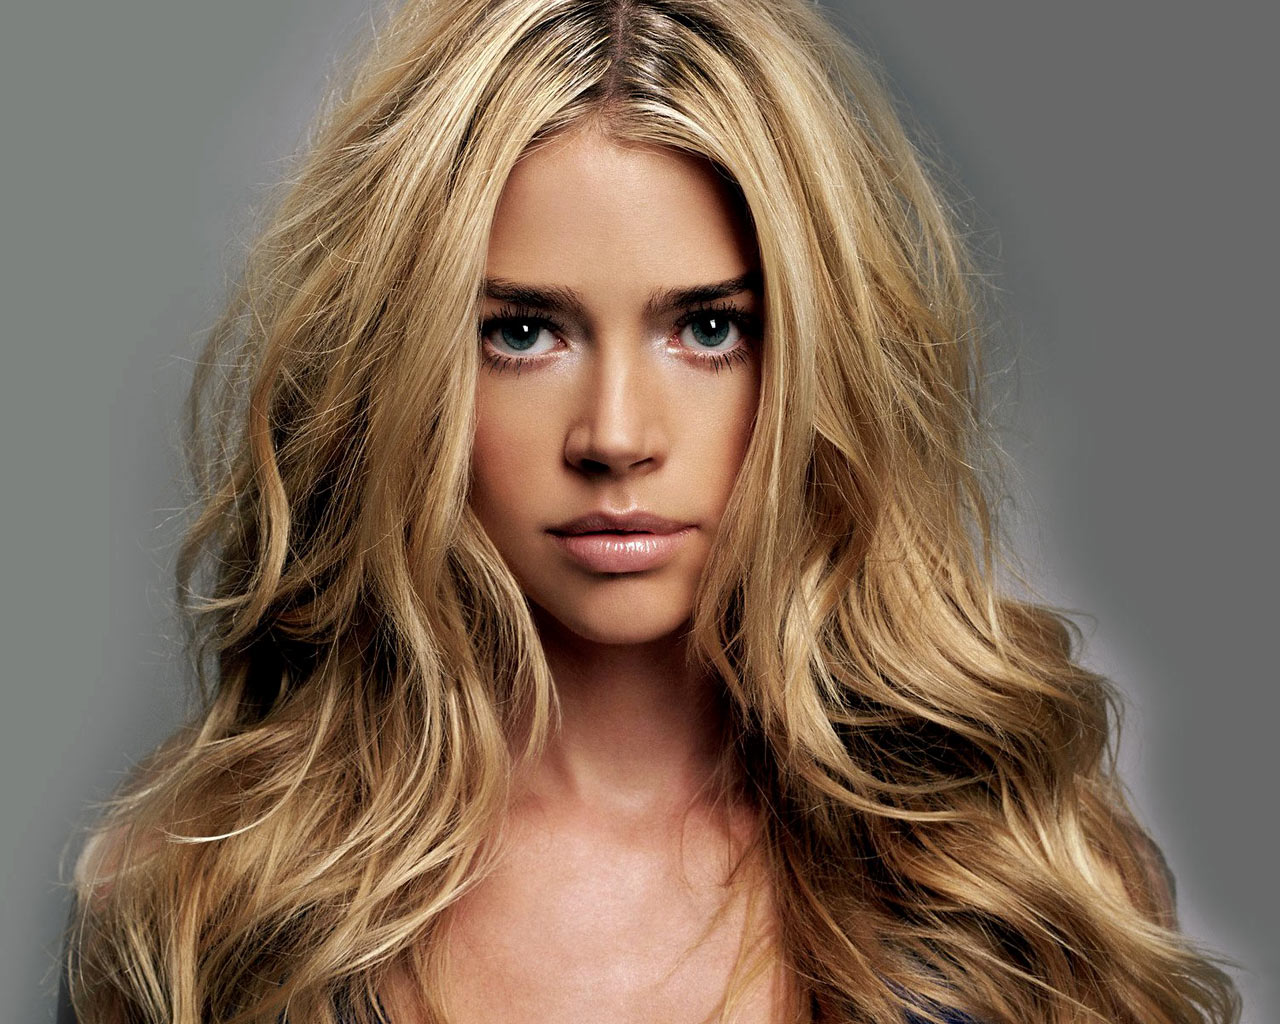 Denise Richards Making Love With Women Artist